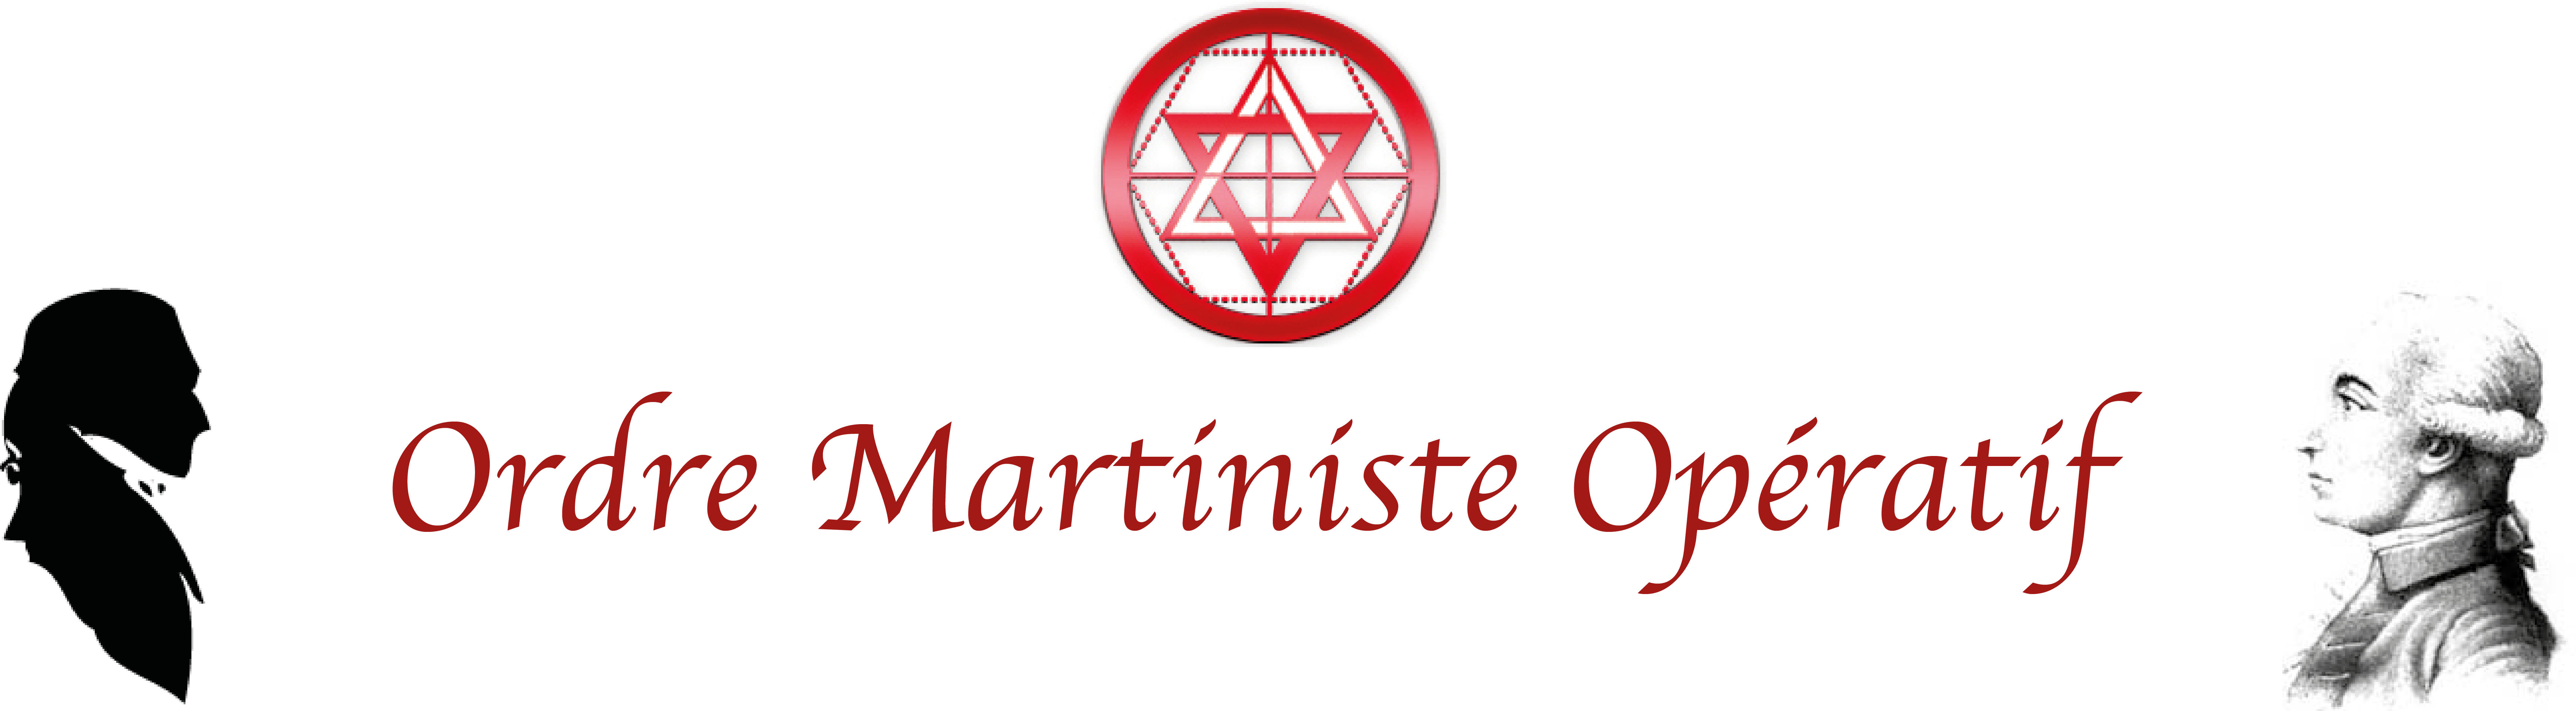 martinism, martinisme, st martin, magic, magie, theurgy, theurgie, ritual, papus, angel, ange, rituel